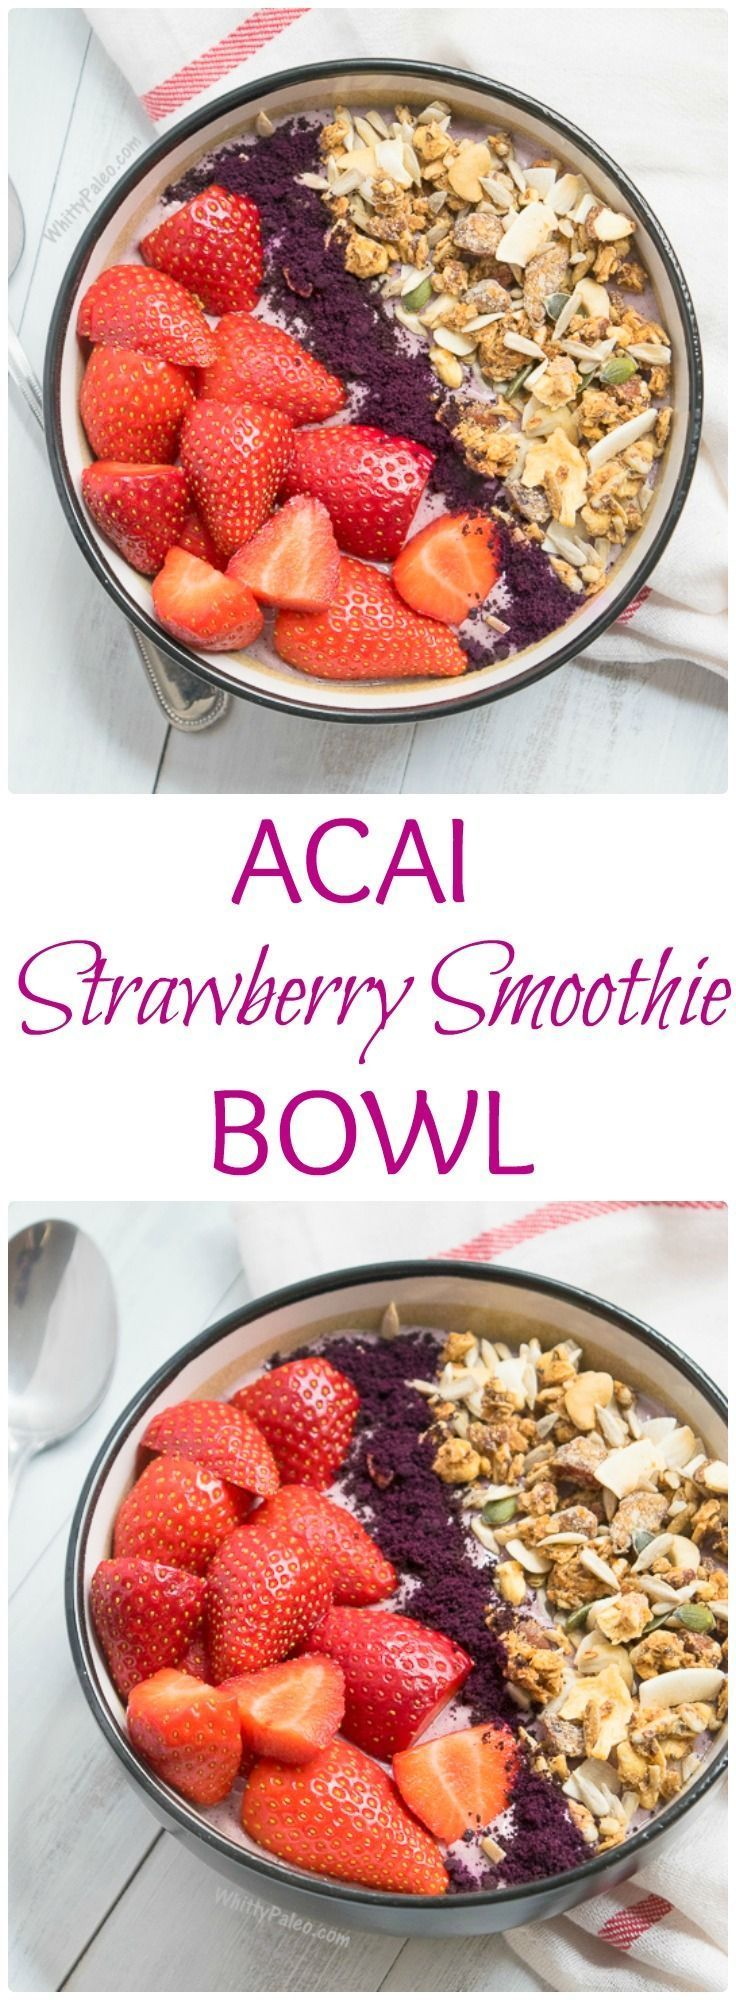 Paleo strawberry acai smoothie bowl. Such a simple, healthy and nourishing breakfast that you can whip up in an instant! From http://whittypaleo.com